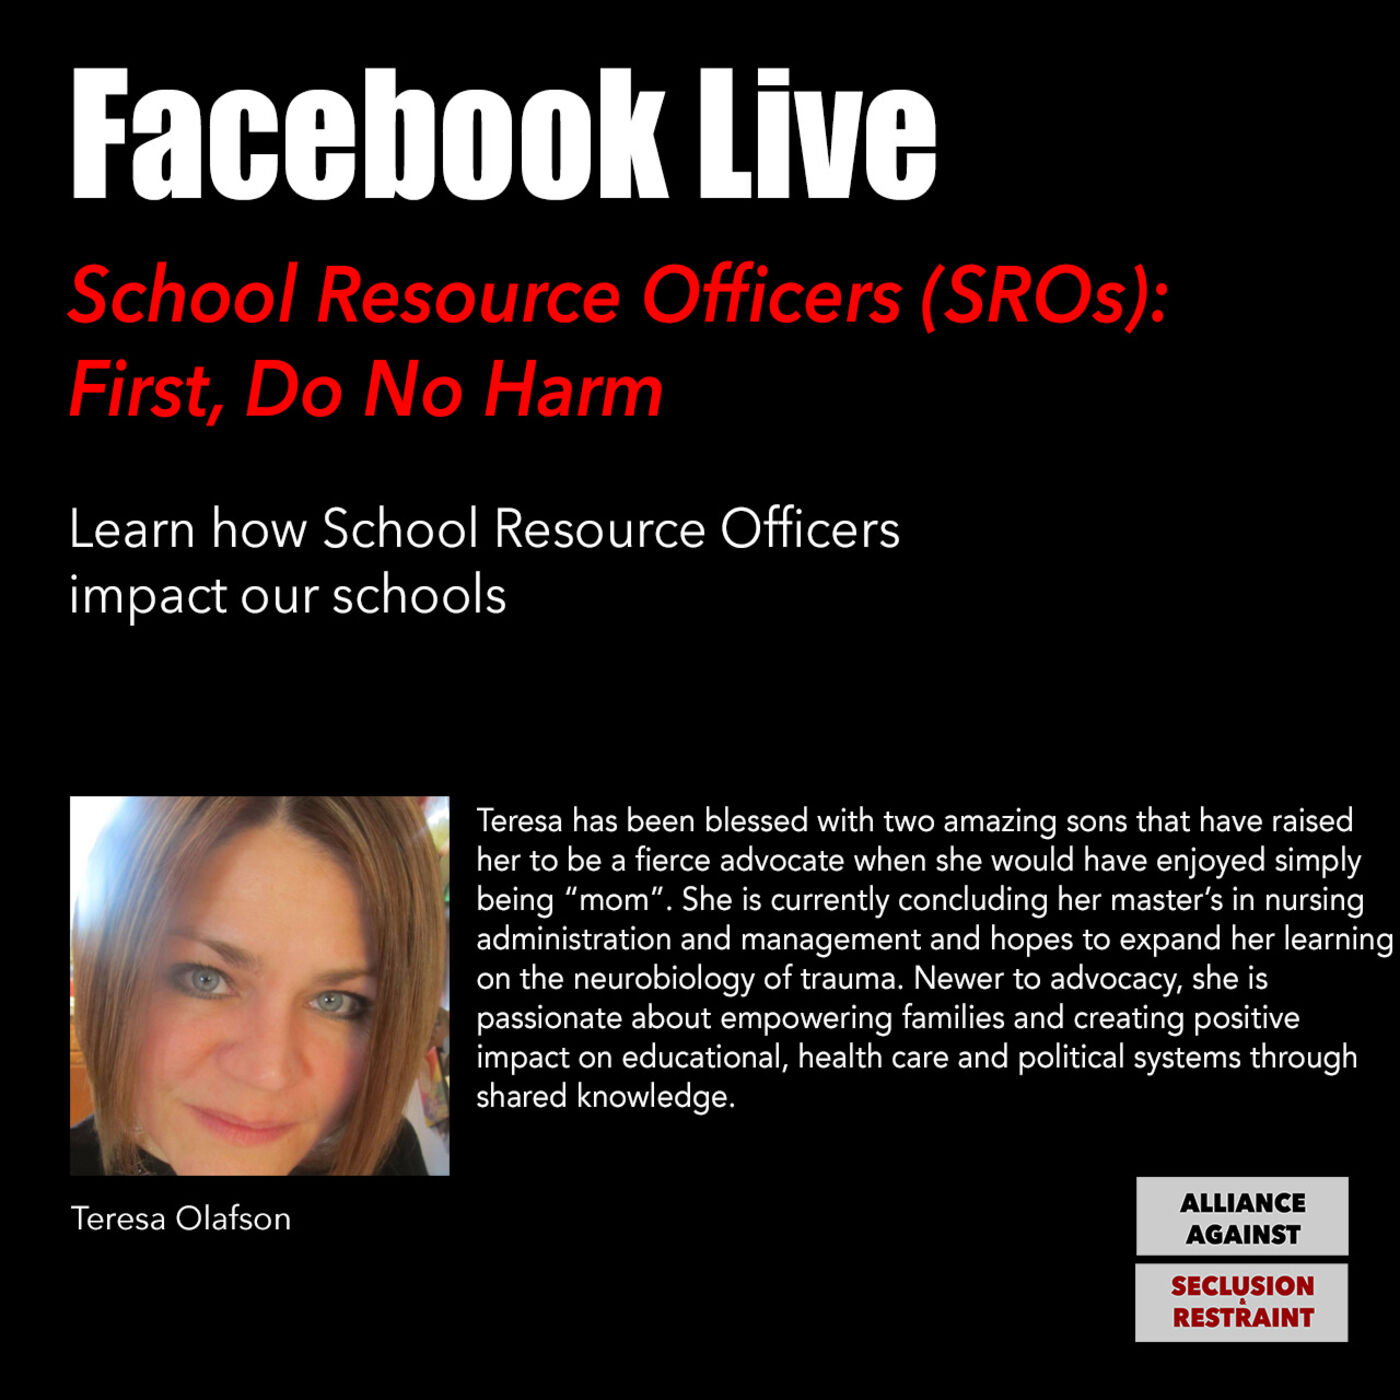 School Resource Officers (SROs): First, Do No Harm